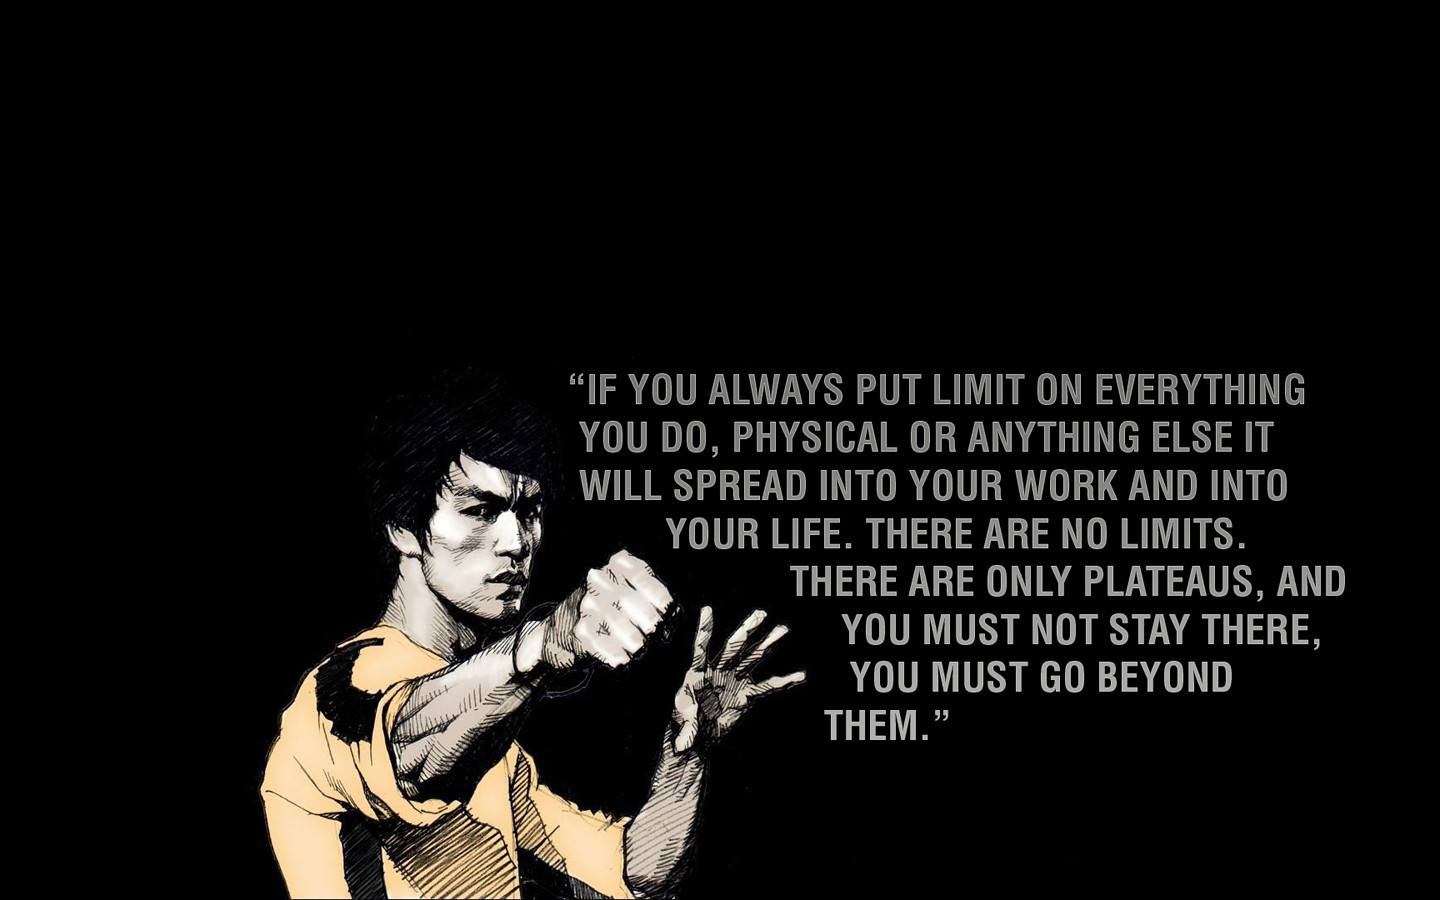 [IMAGE] There are no limitations